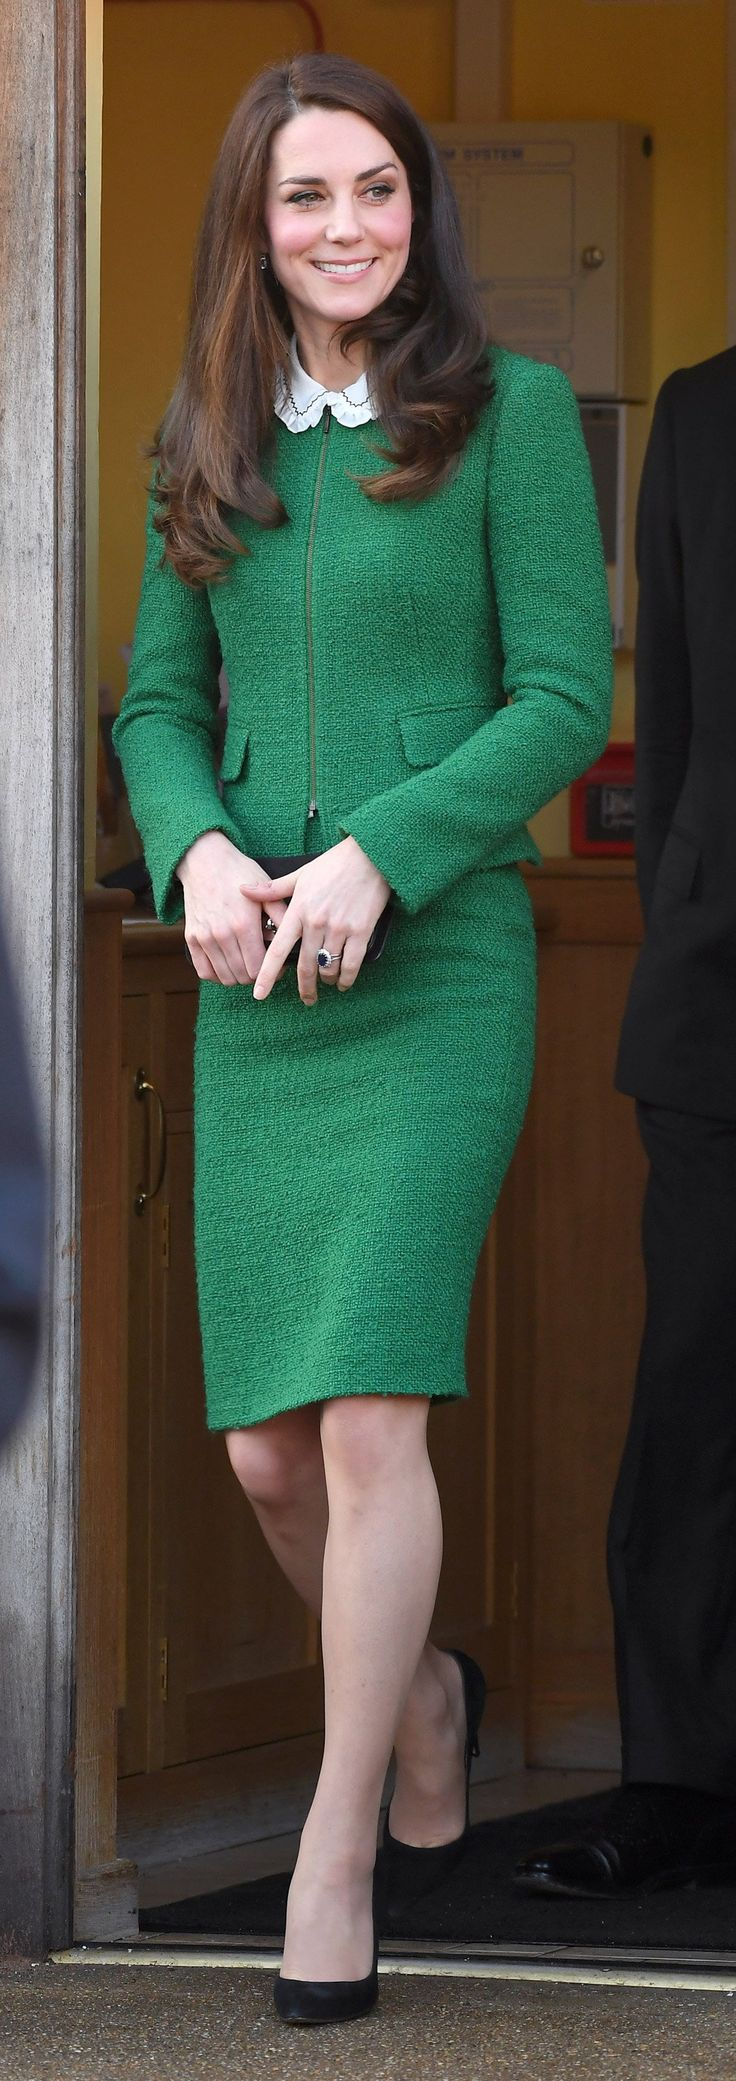 Kate Middleton Gives the Classic Skirtsuit a Royal Touch